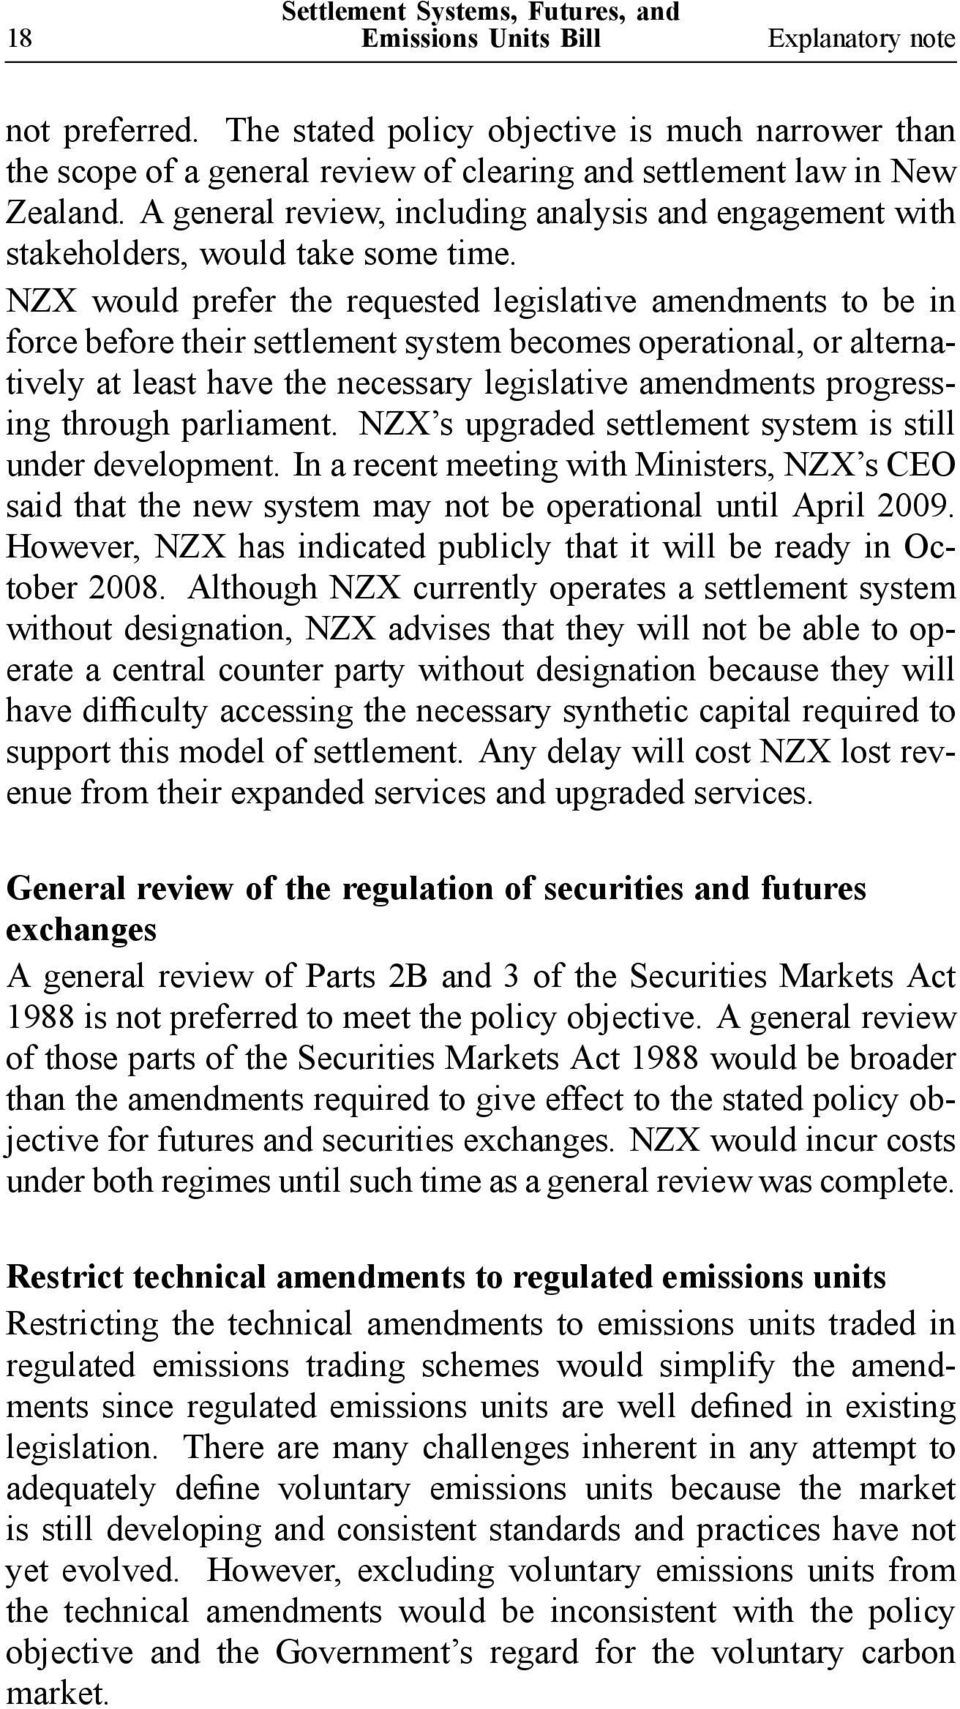 NZX would prefer the requested legislative amendments to be in force before their settlement system becomes operational, or alternatively at least have the necessary legislative amendments